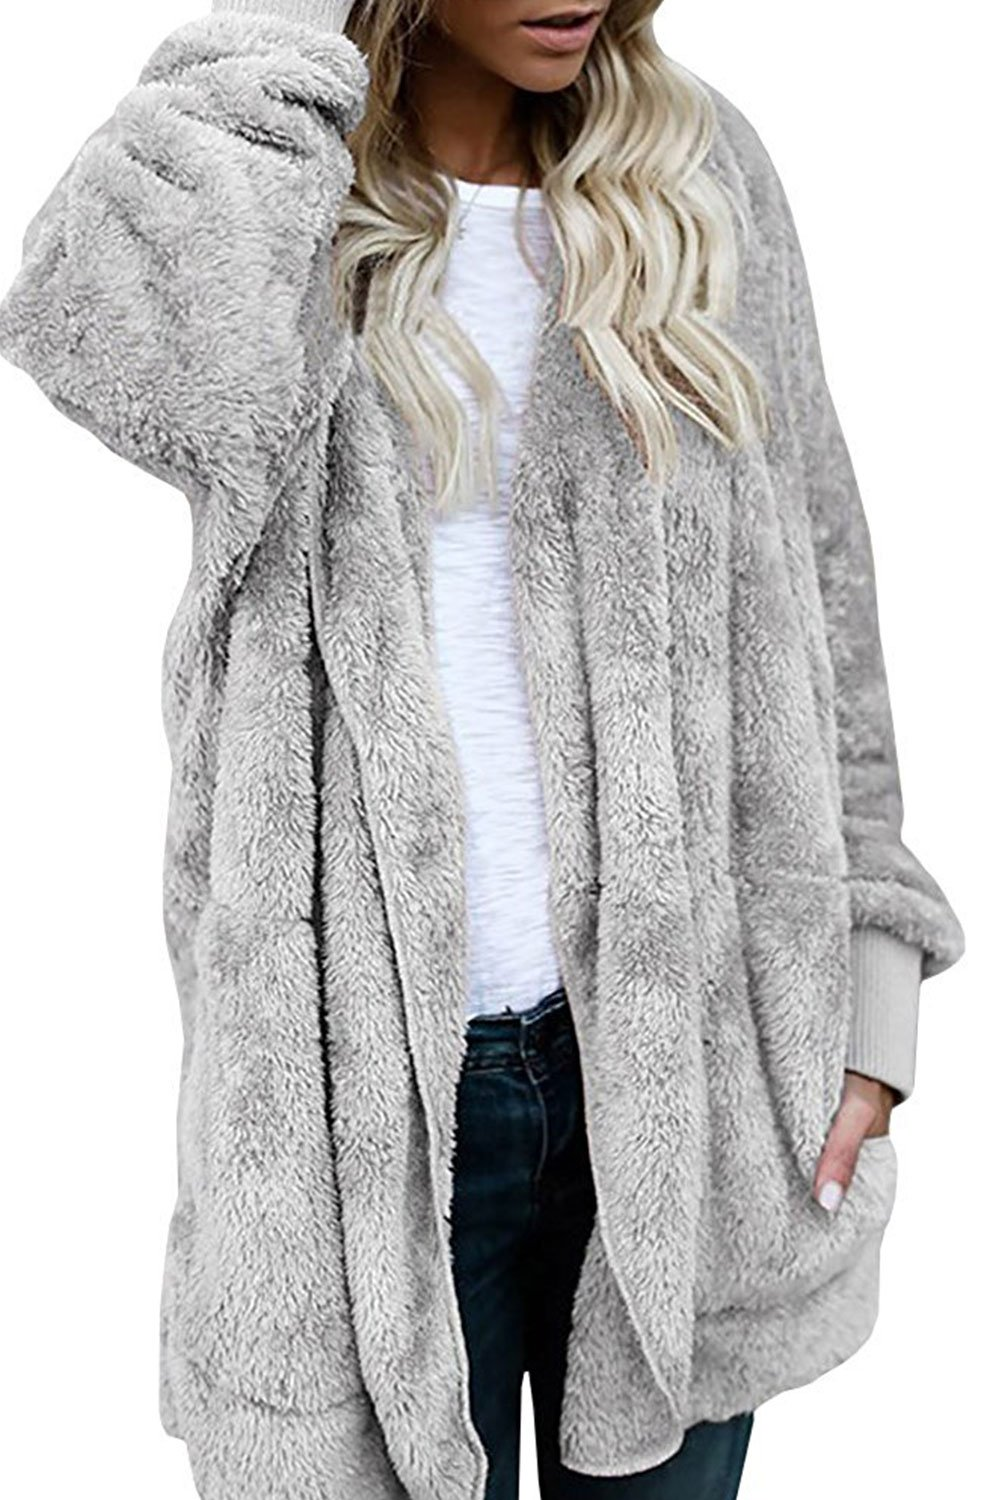 Women Fashion Fleece Sherpa Jacket Hooded Coat with Pocket Winter Warm Outwear Gray by Fantasy Star (US 16-18)XL